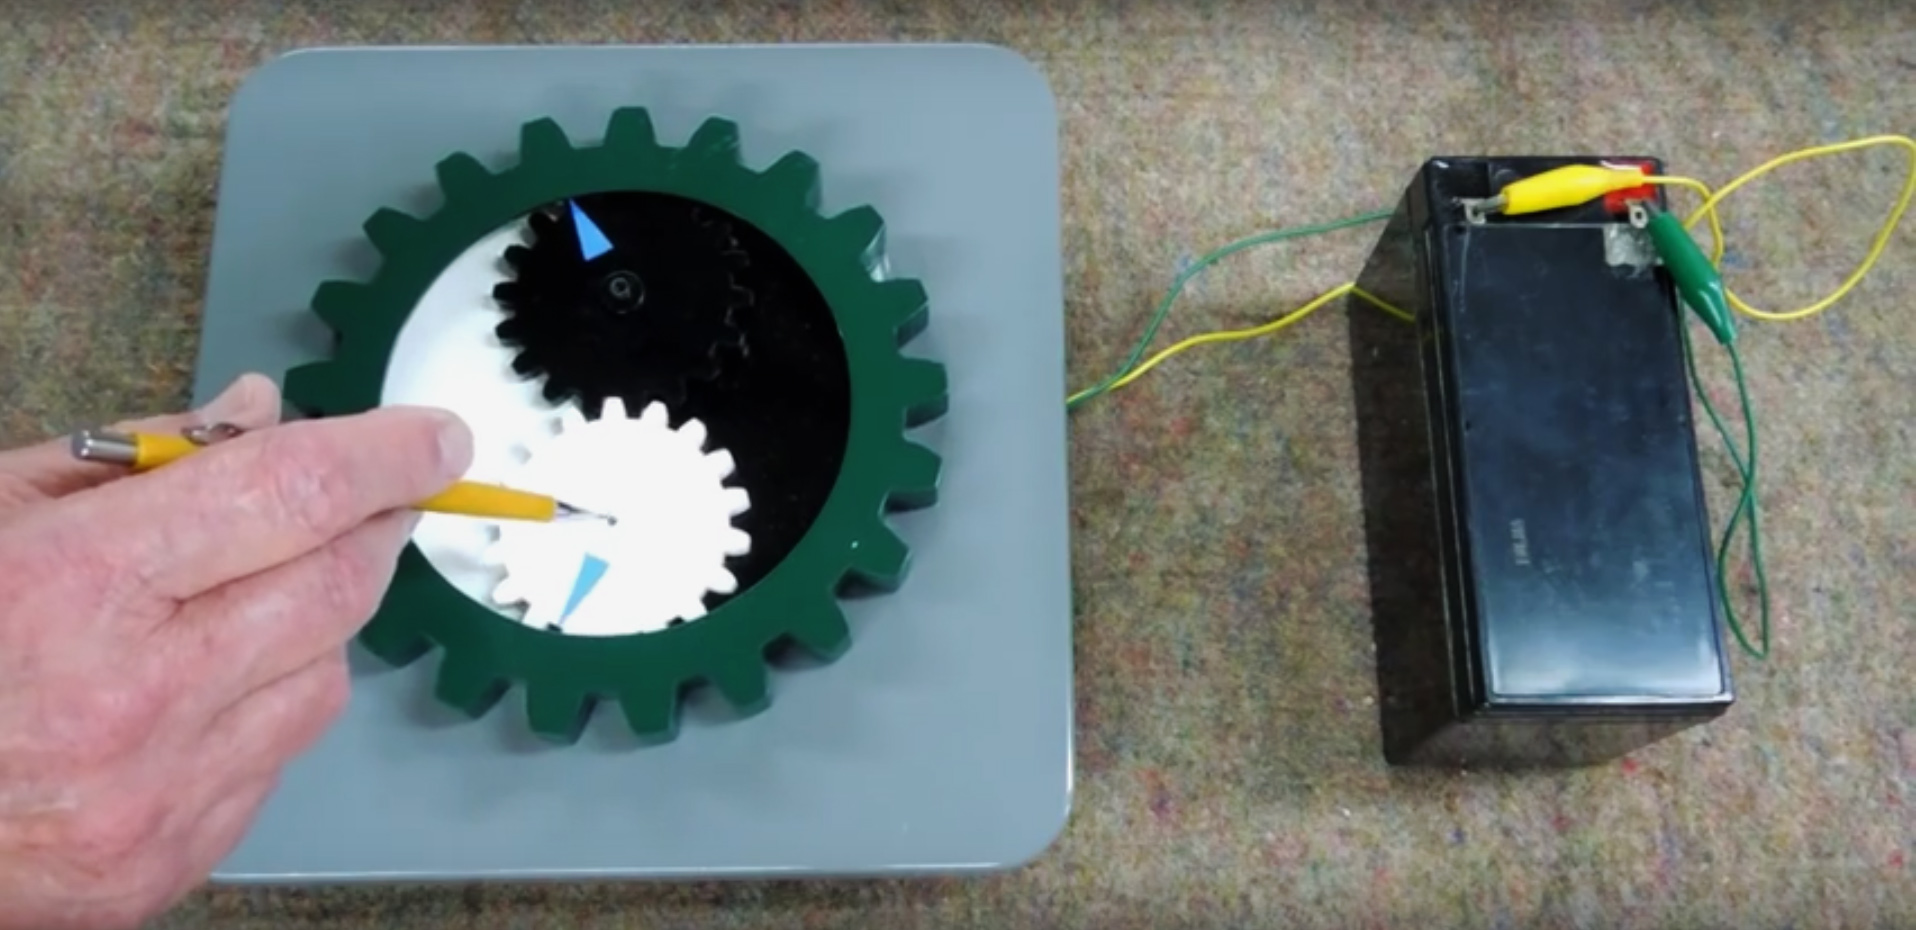 Understand the Engineering Behind the Impossible Yin Yang Gears